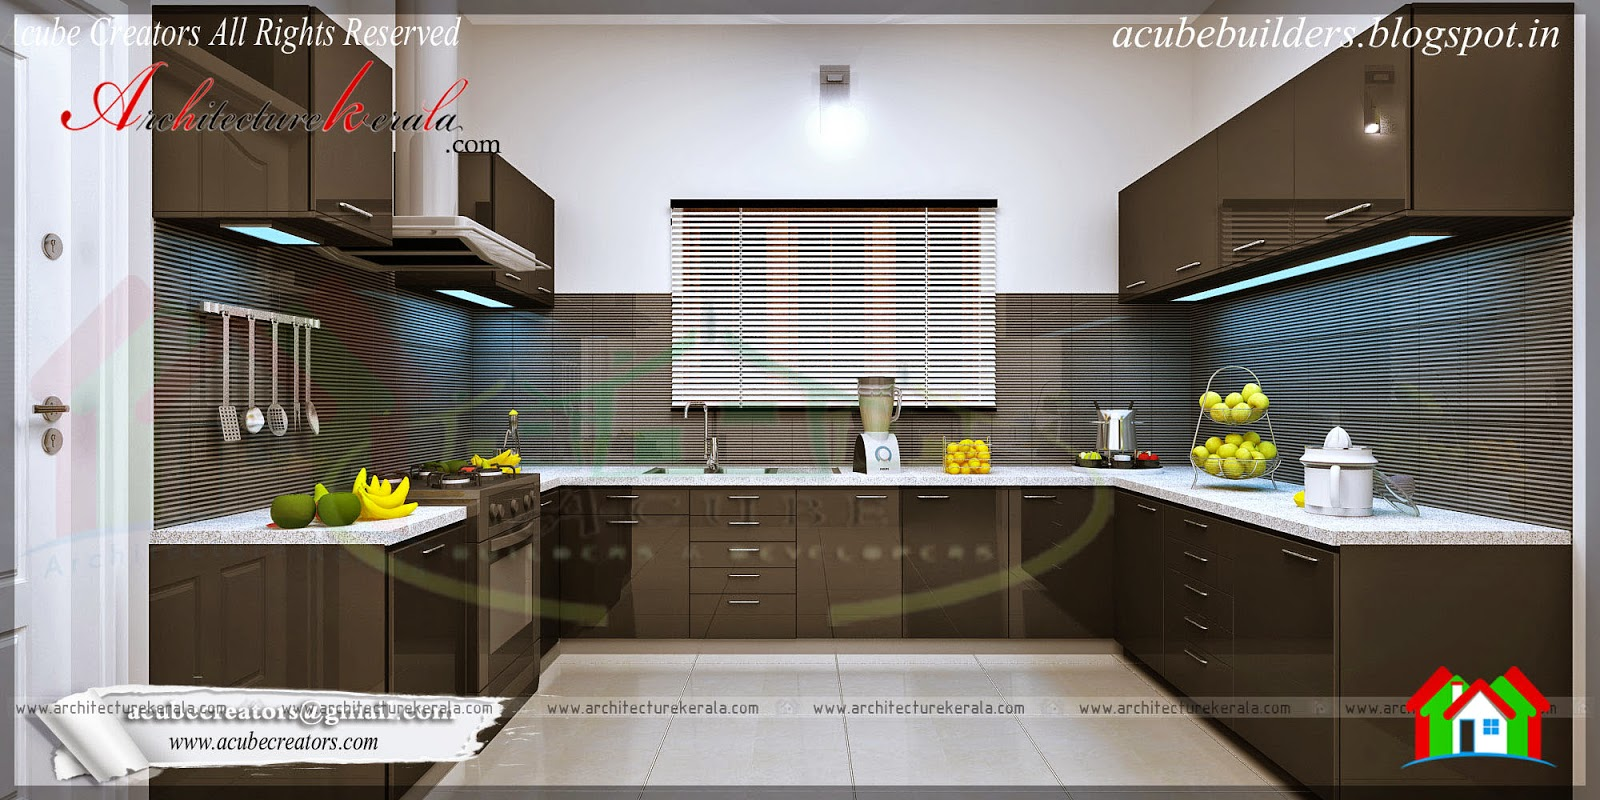 Modern kitchen interior architecture kerala for Interior design images kitchen